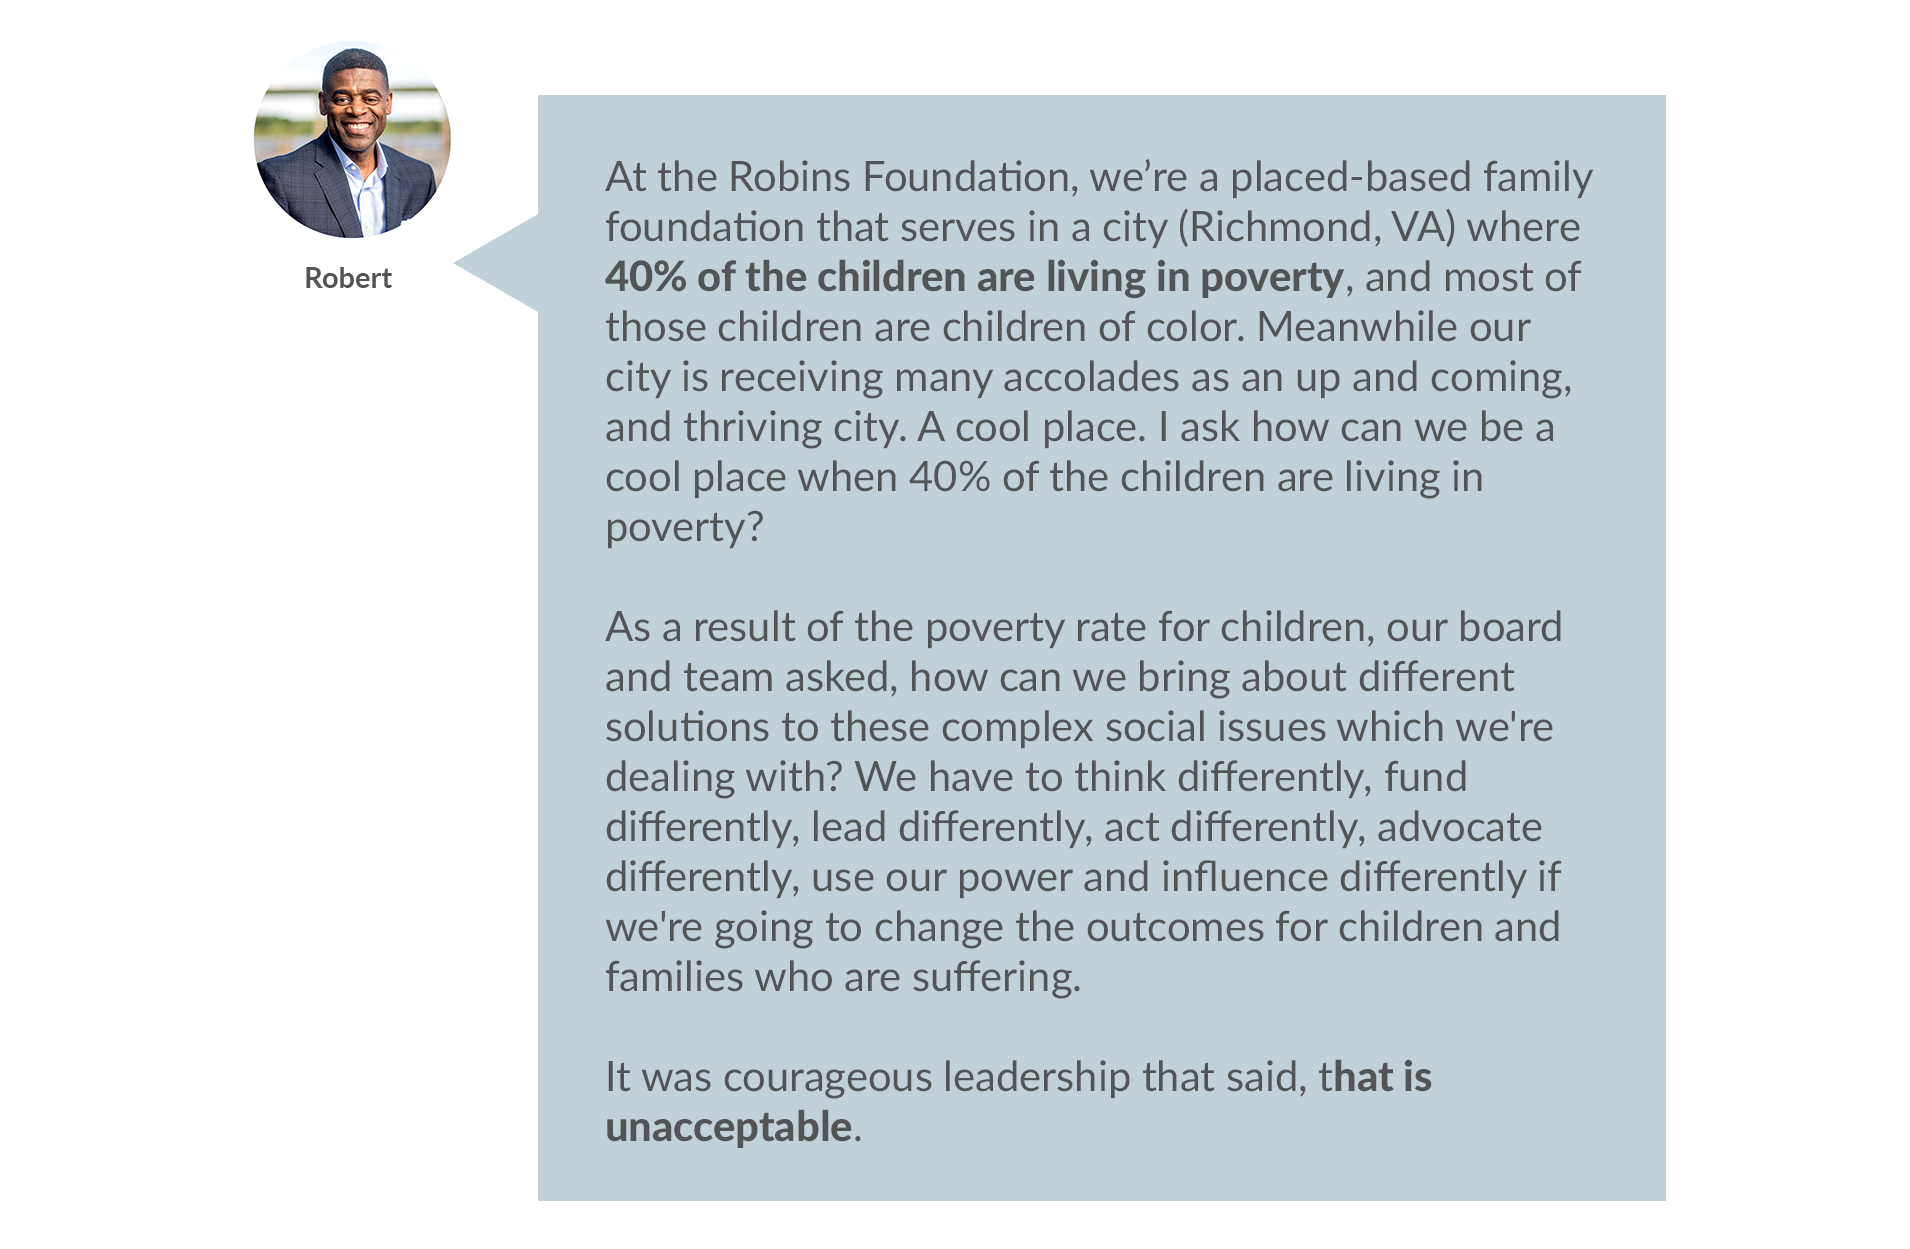 Robert answers: Robert: At the Robins Foundation, we're a placed-based family foundation that serves in a city where 40% of the children are living in poverty, and most of those children are children of color.  Meanwhile our city is receiving many accolades  as an up and coming, and thriving city. A cool place. I ask how can we be a cool place when 40% of the children are living in poverty?  As a result of the poverty rate for children, our board and team asked, how can we bring about different solutions to these complex social issues which we're dealing with? We have to think differently, fund differently, lead differently, act differently, advocate differently, use our power and influence differently if we're going to change the outcomes for children and families who are suffering.   It was courageous leadership that said, that is unacceptable.